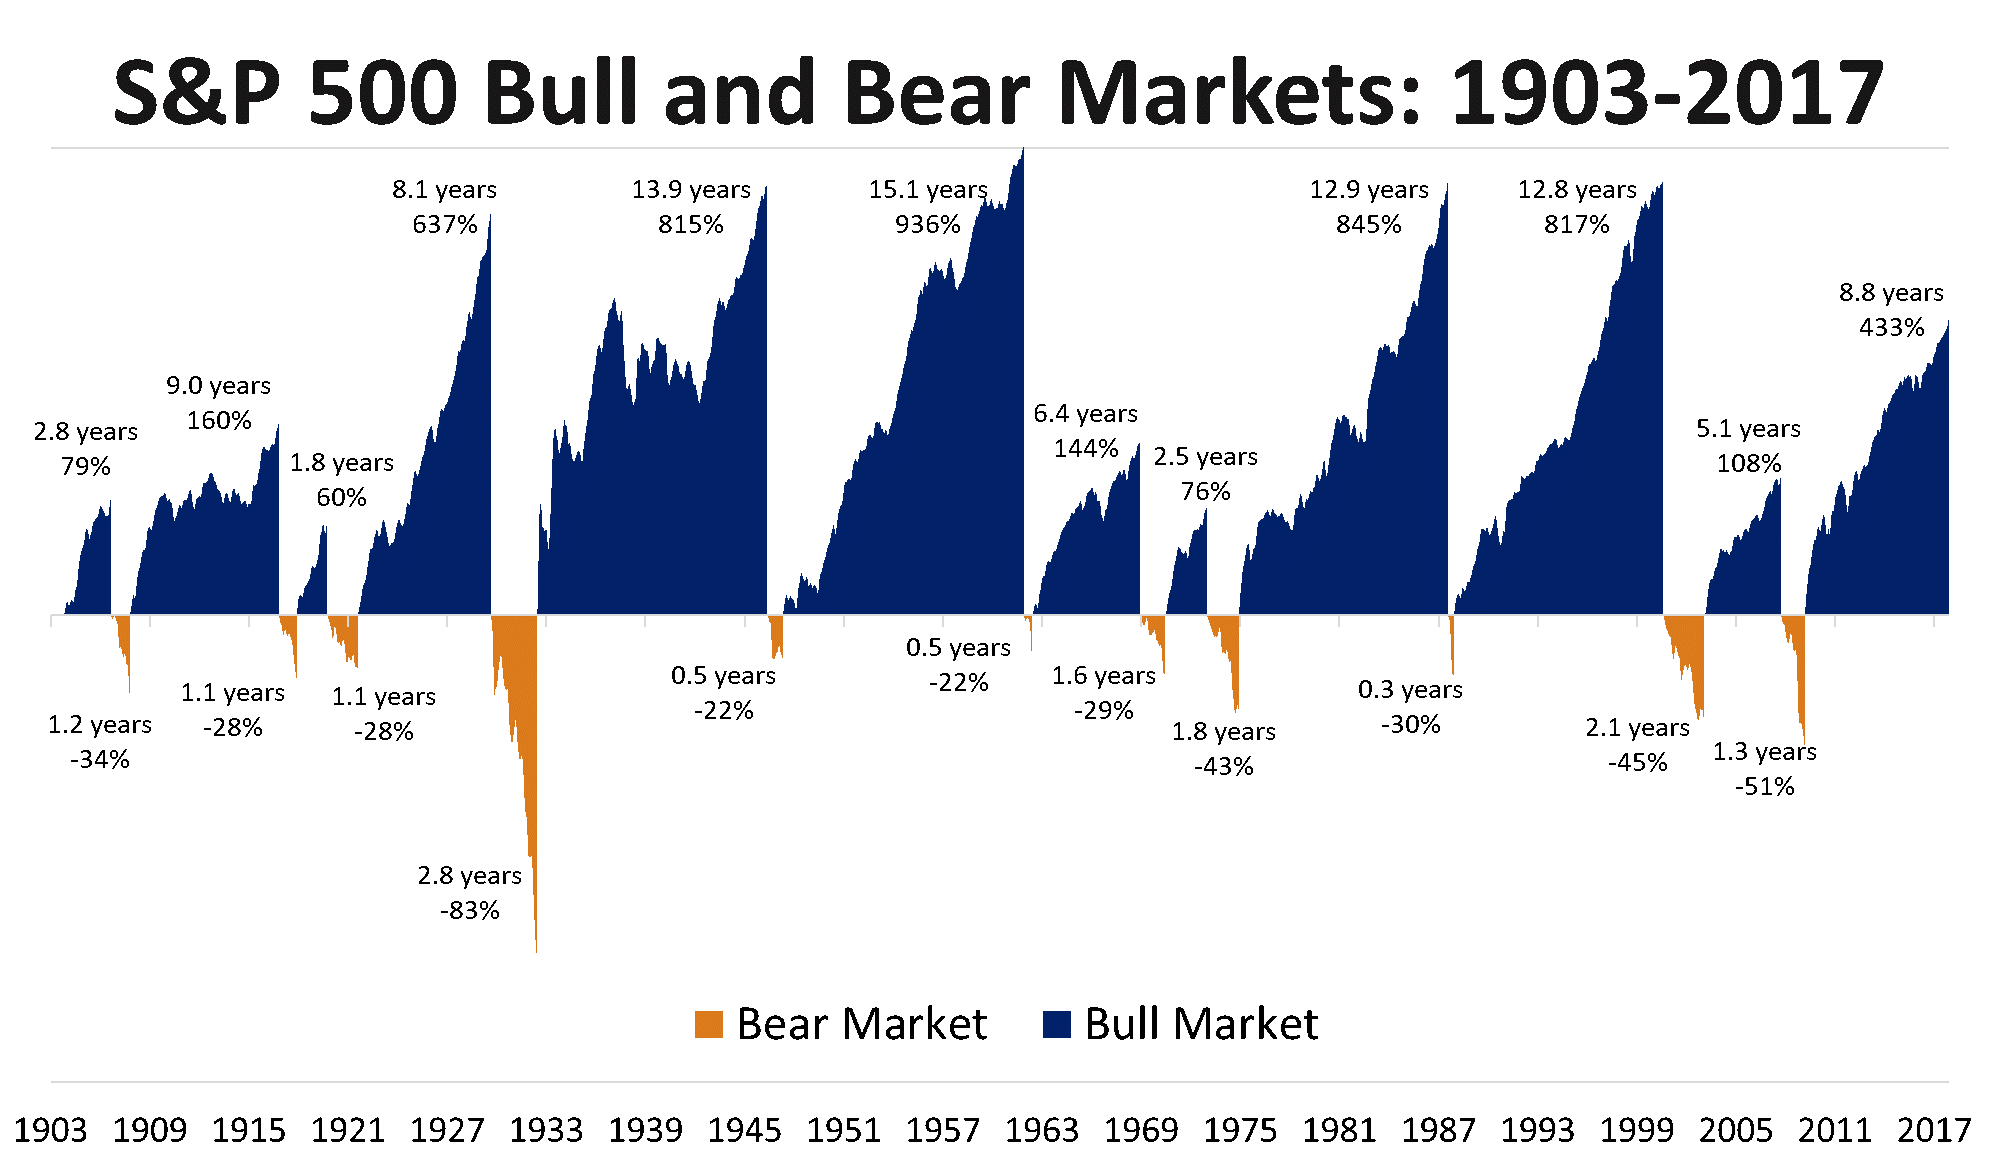 bull and bear markets graphic